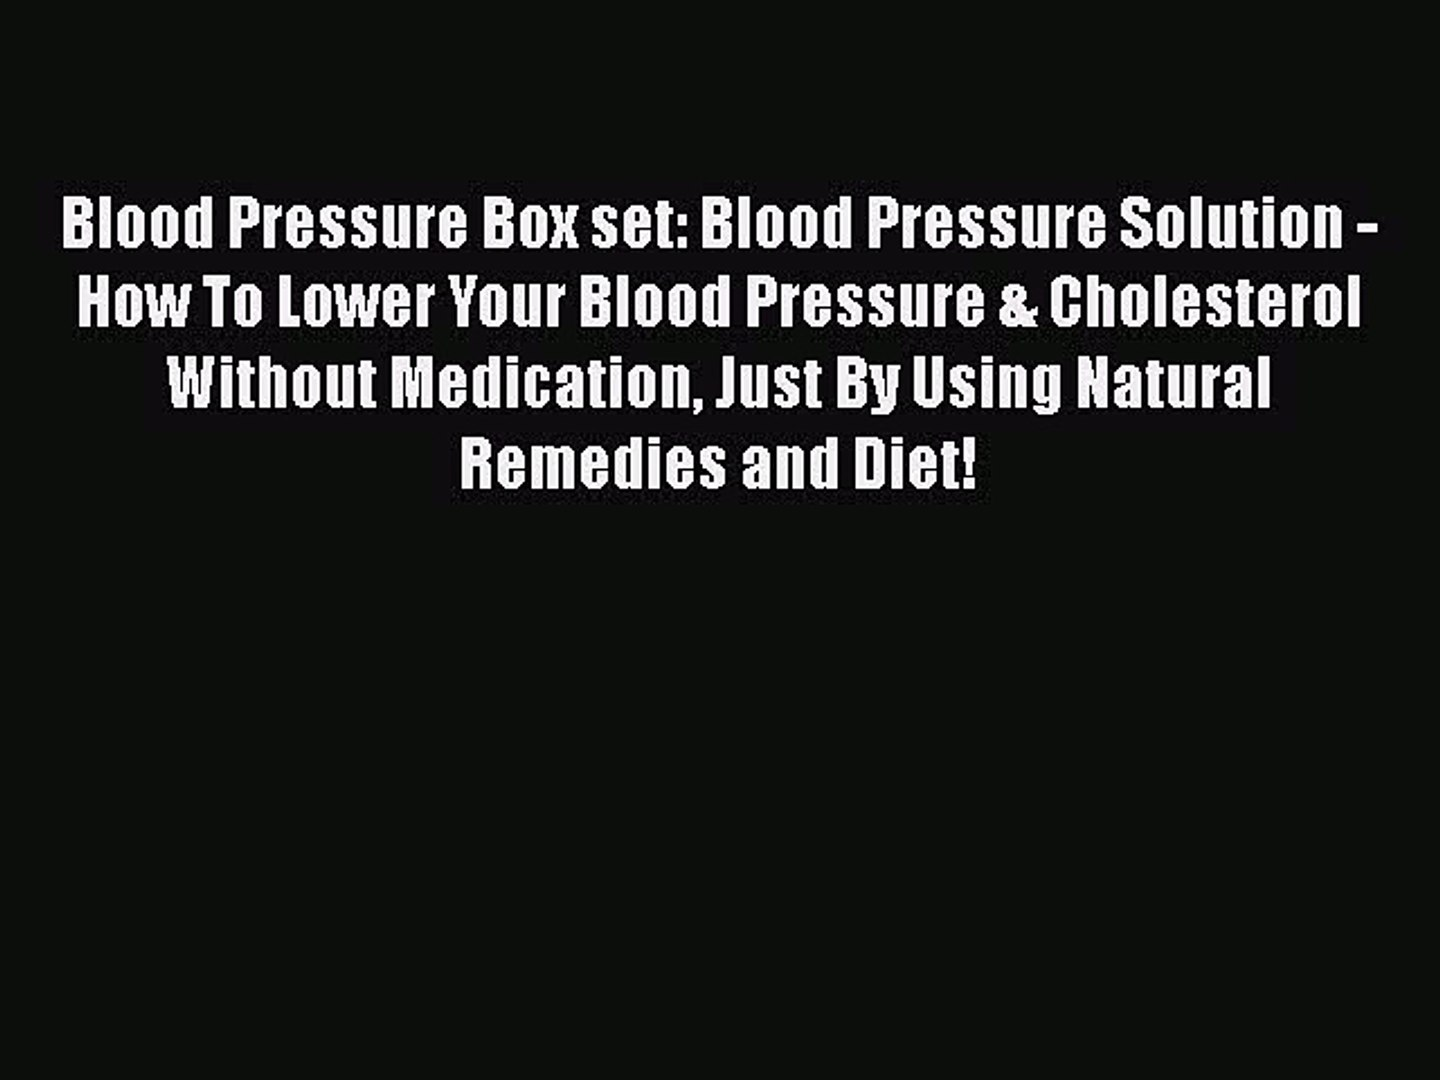 Read Blood Pressure Box set: Blood Pressure Solution - How To Lower Your Blood Pressure & Choles